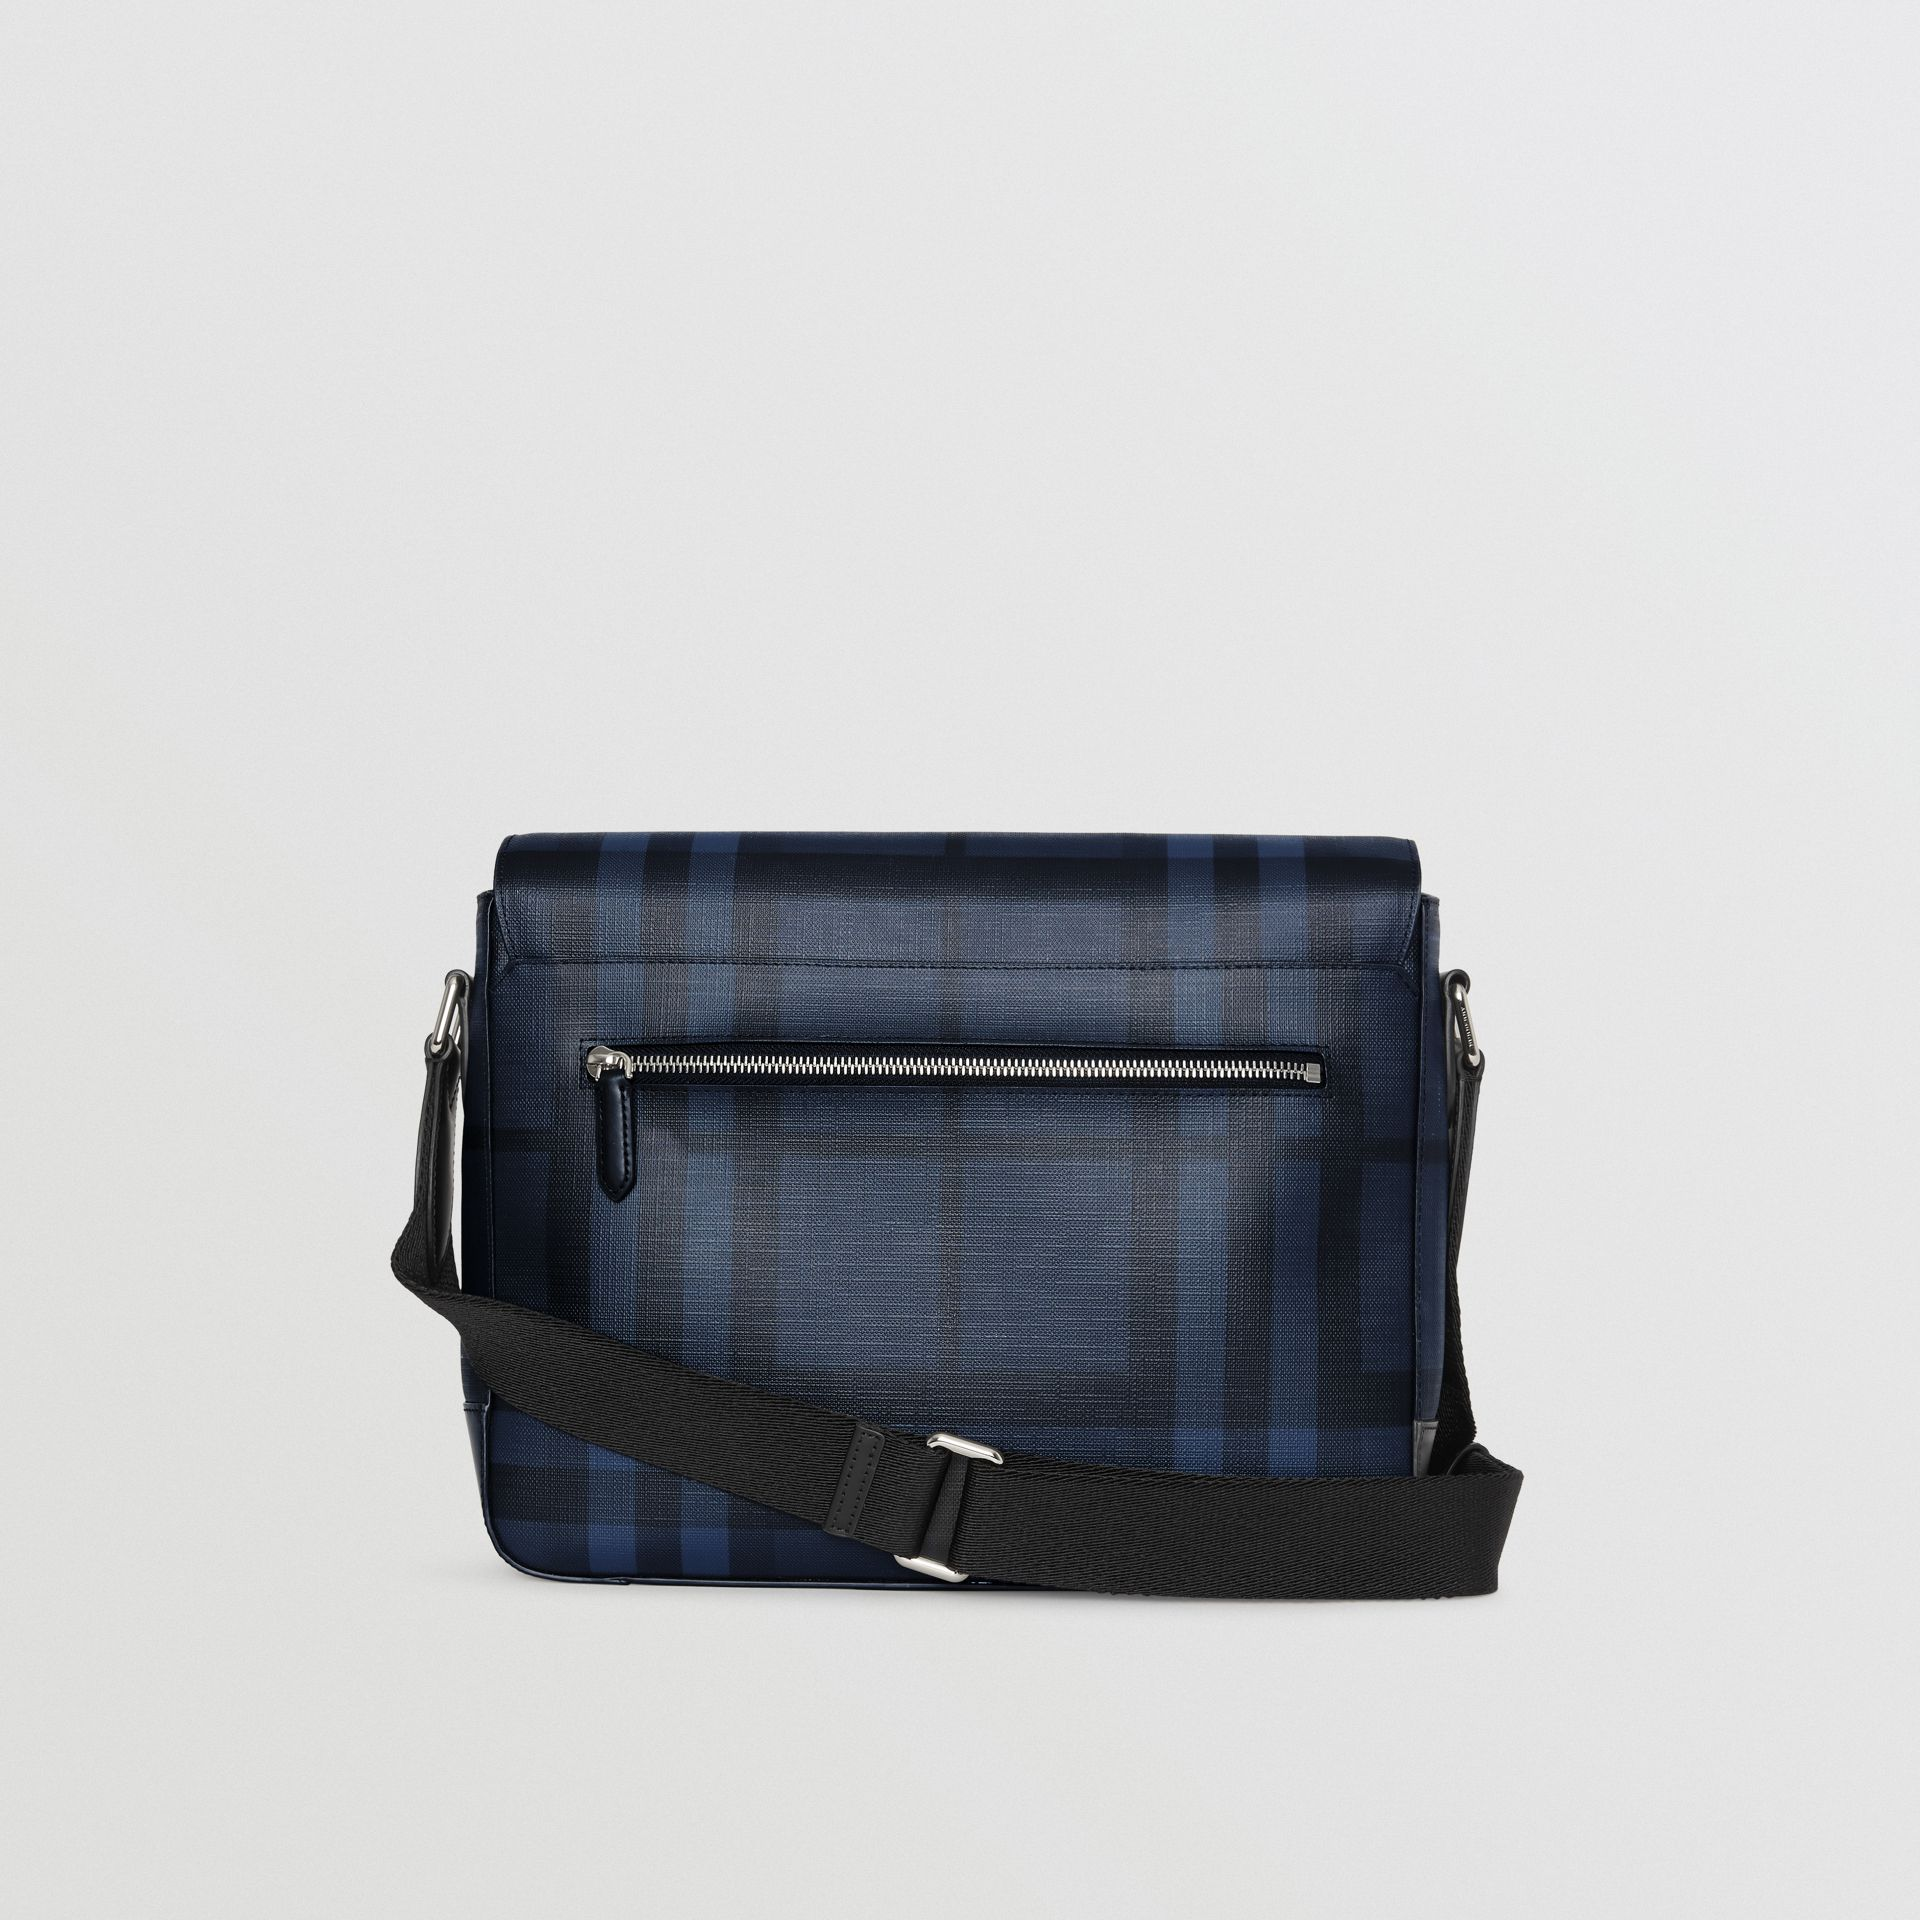 Medium Leather Trim London Check Messenger Bag in Navy/black - Men | Burberry Singapore - gallery image 7